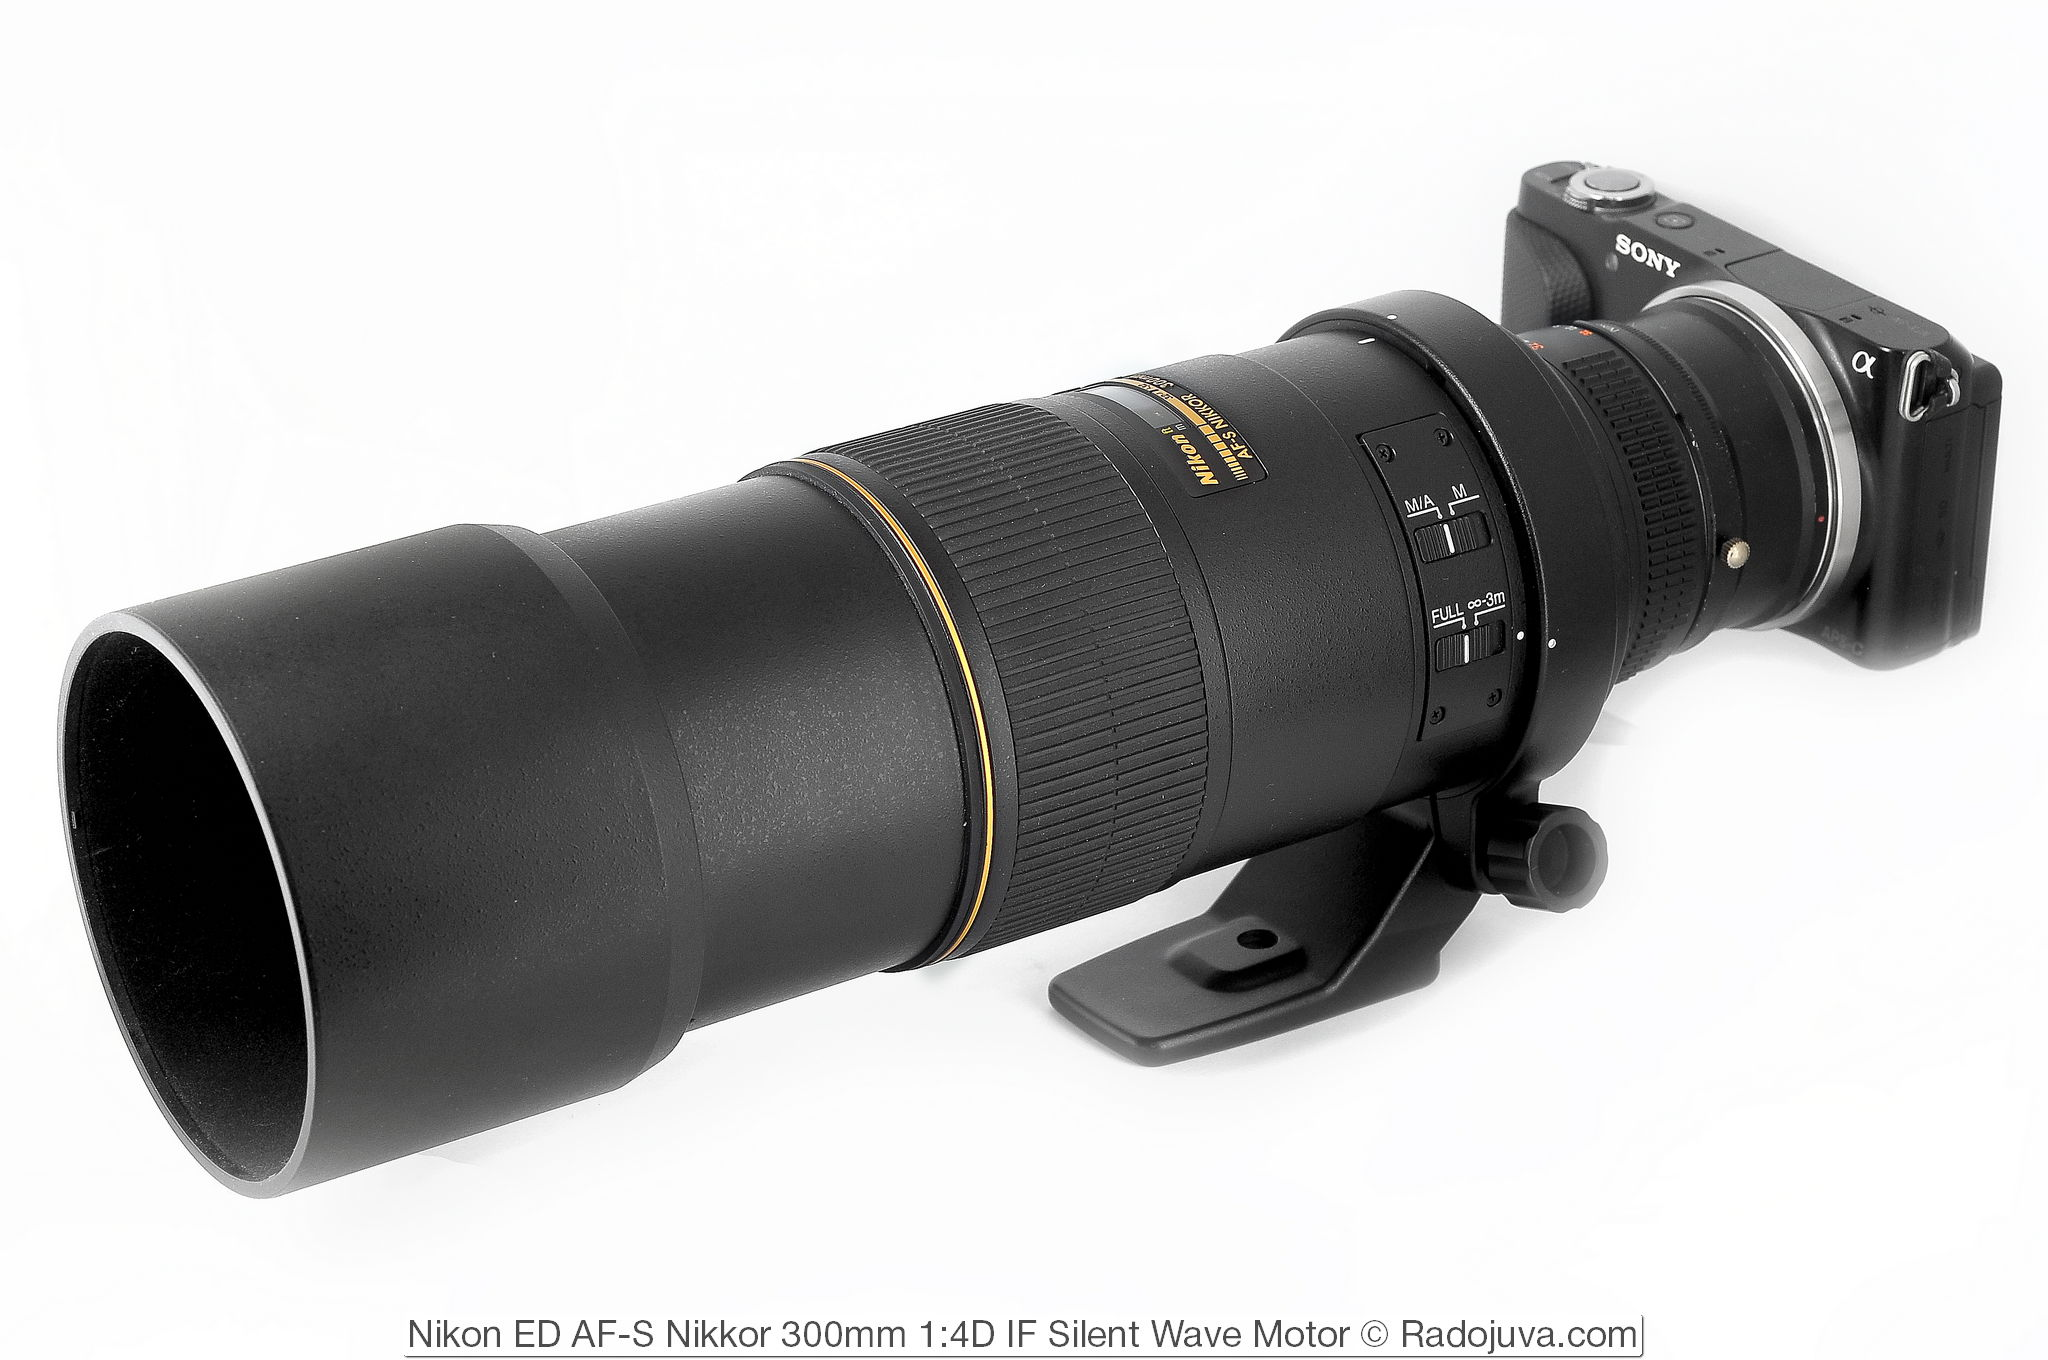 Nikon ED AF-S Nikkor 300mm 1:4D IF Silent Wave Motor